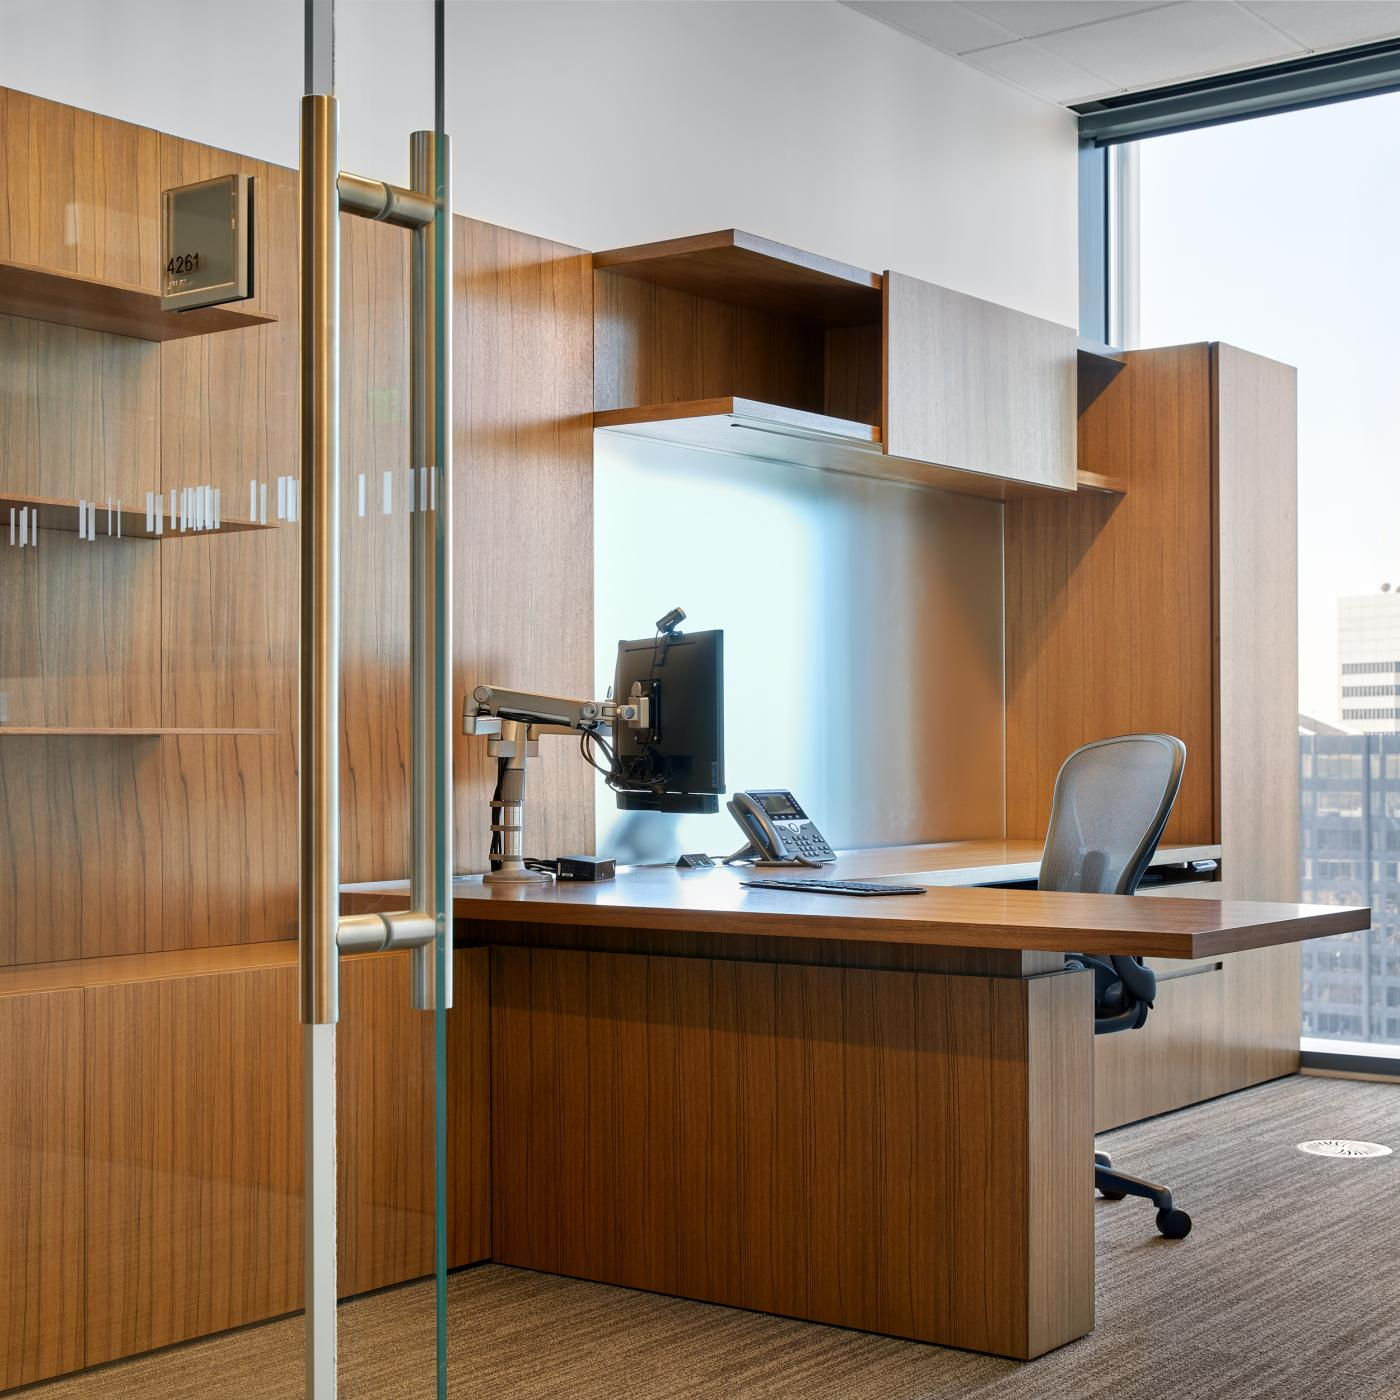 Universal-sized offices feature NEW MILLENNIA with Paldao veneers, etched mirror glass, and adjustable-height worksurfaces.